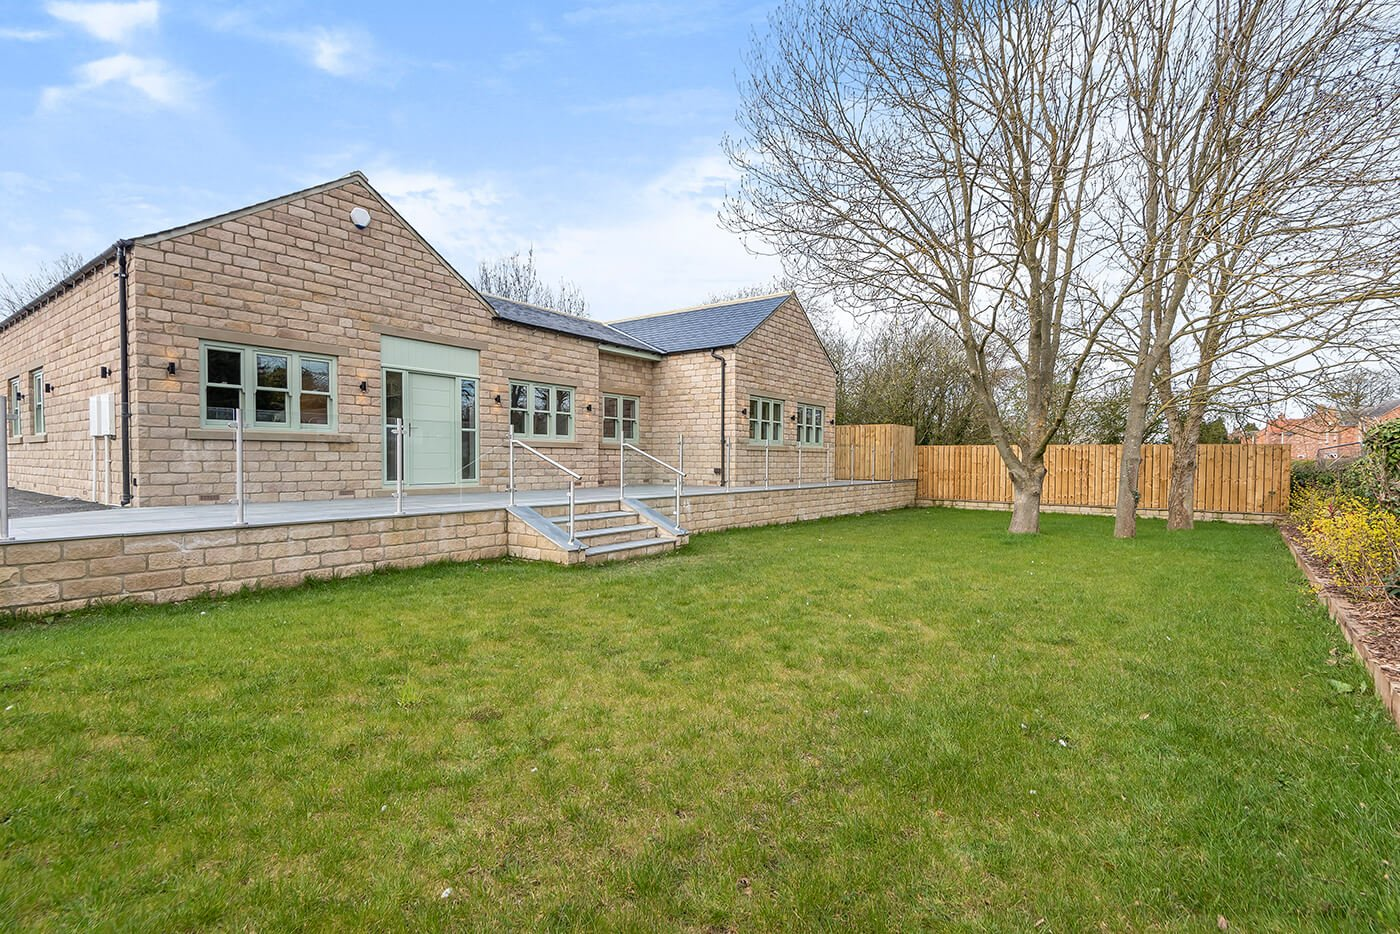 Harmby Homes - Barley Court, Staveley The Brocket garden